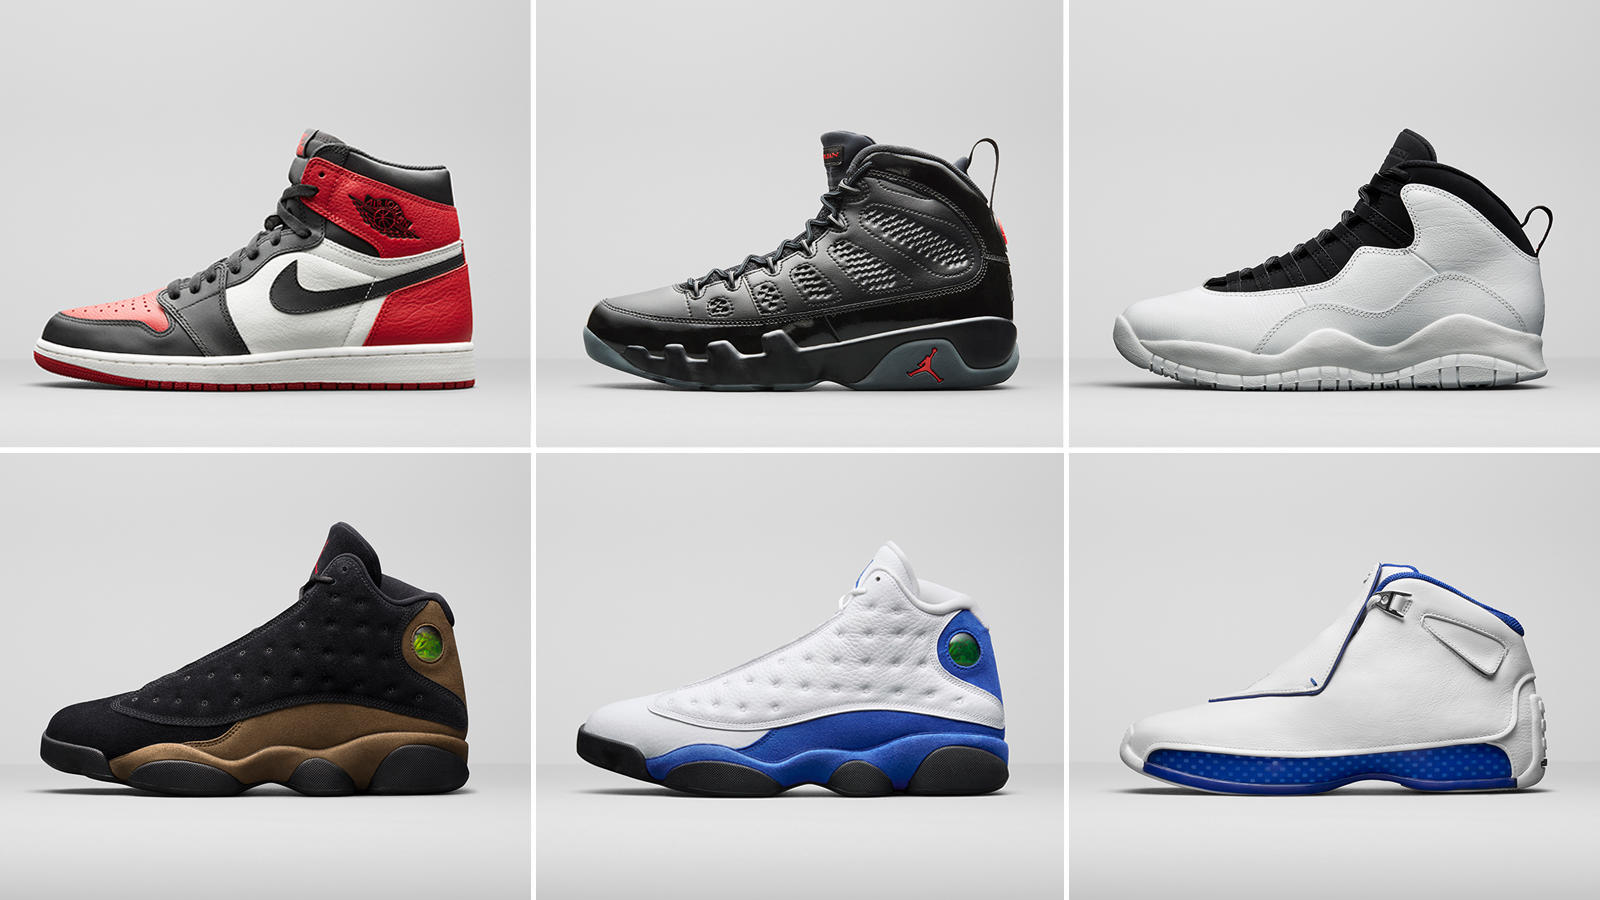 Jordan Brand Unveils Select Styles for the Spring Season 91